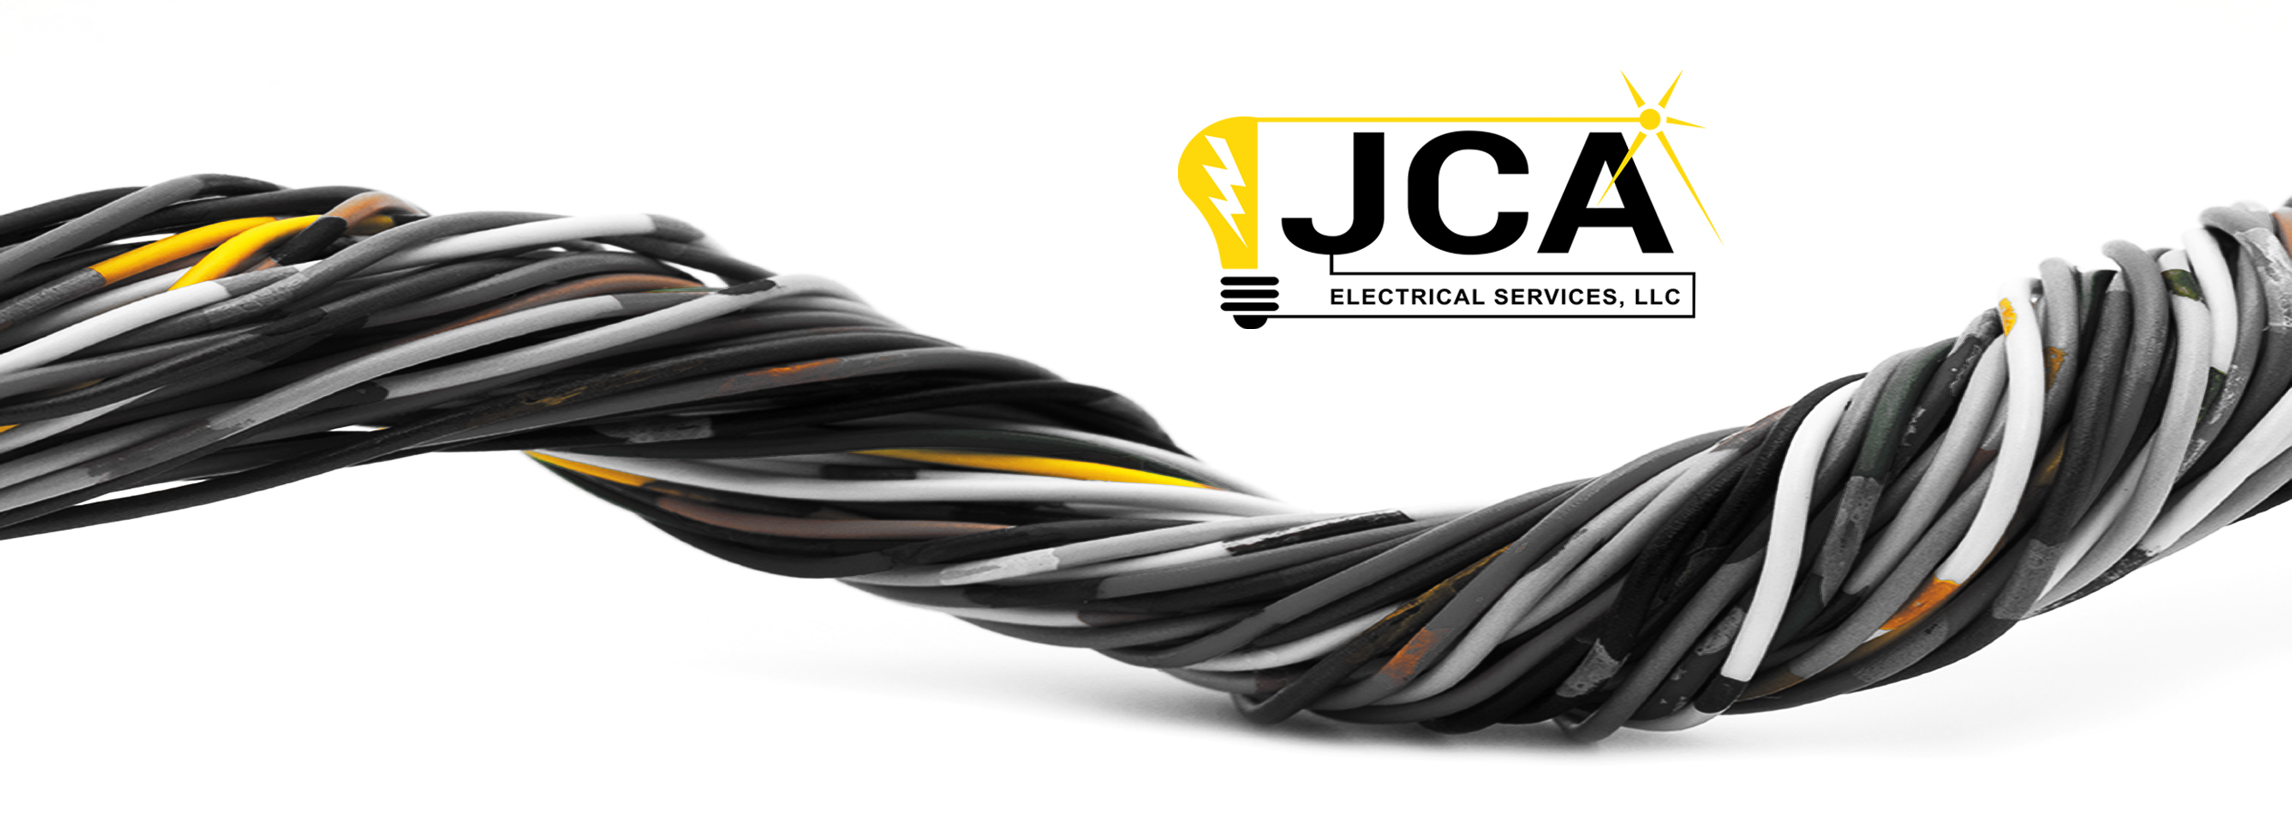 JCA Electronic Services